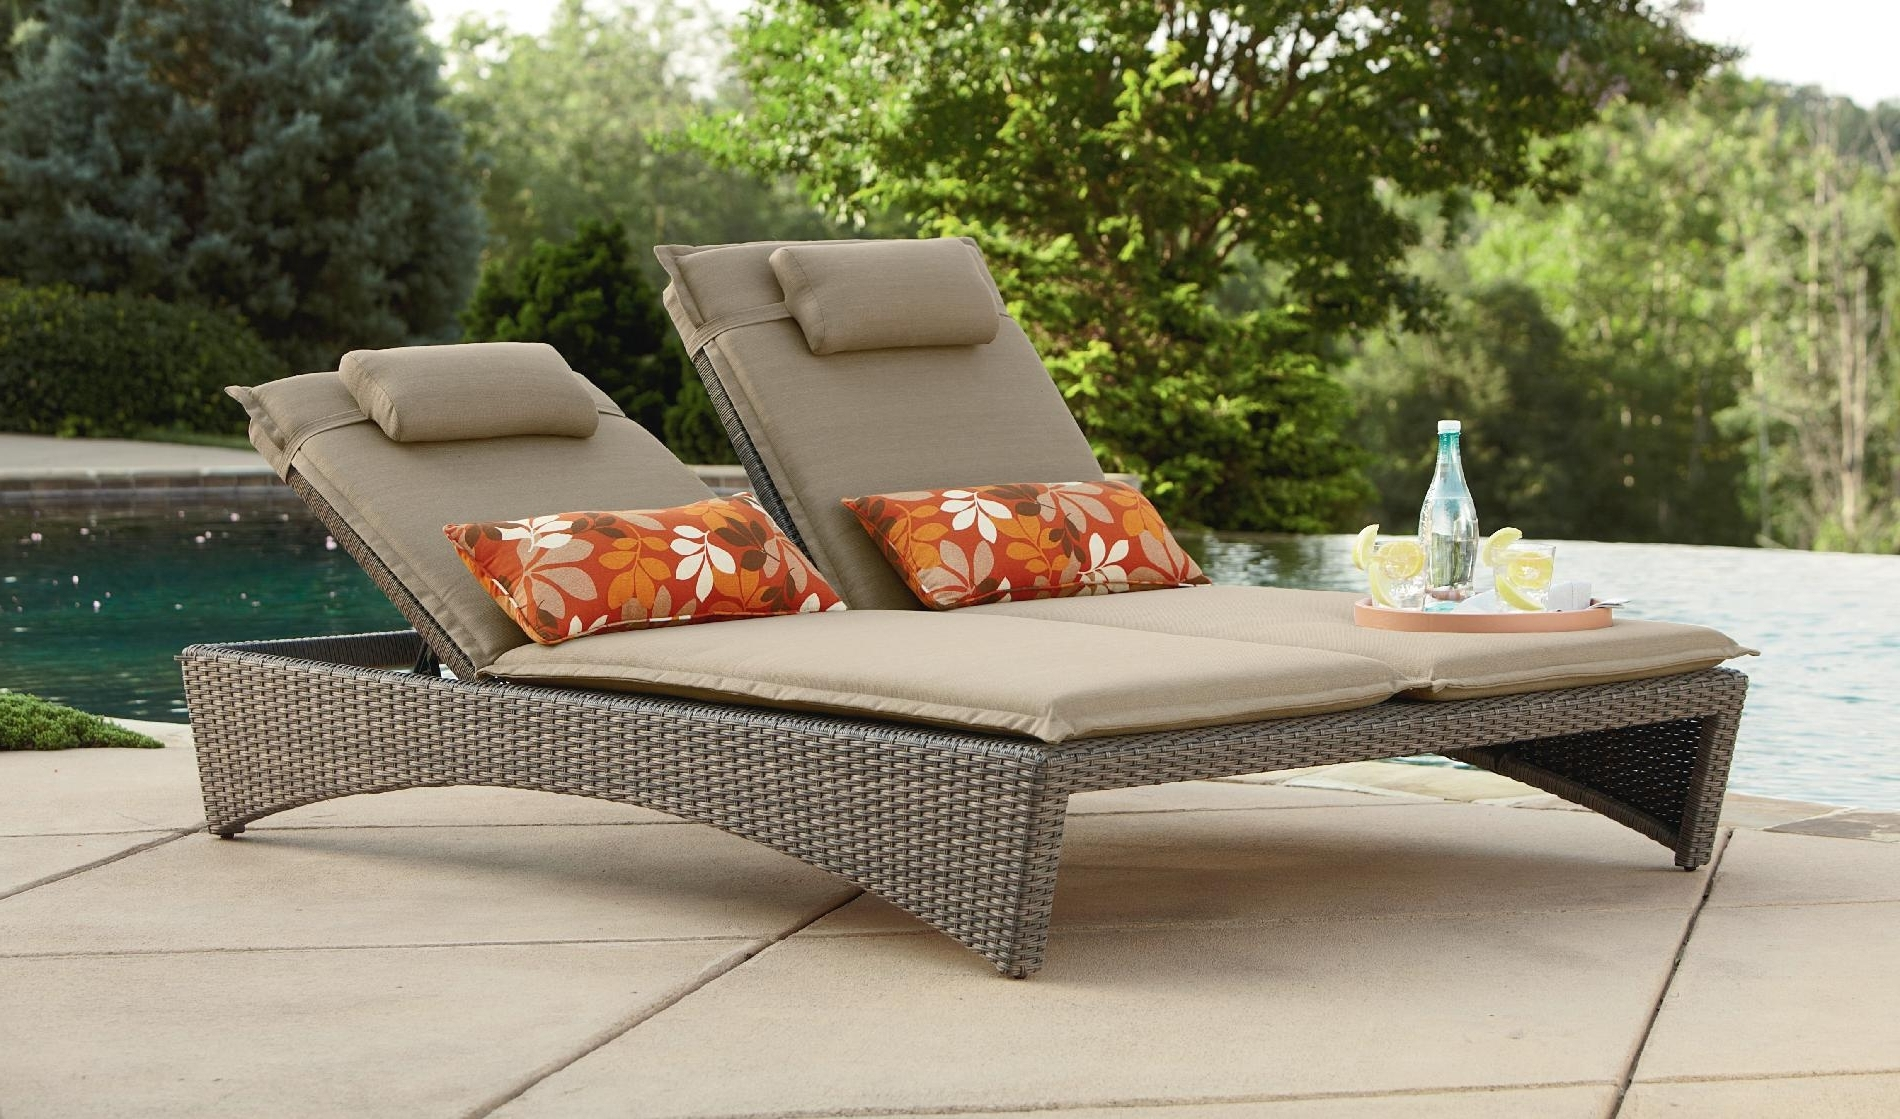 Chaise Lounge Chairs For Poolside For Most Recent Best Lounge Chair For Pool • Lounge Chairs Ideas (View 2 of 15)